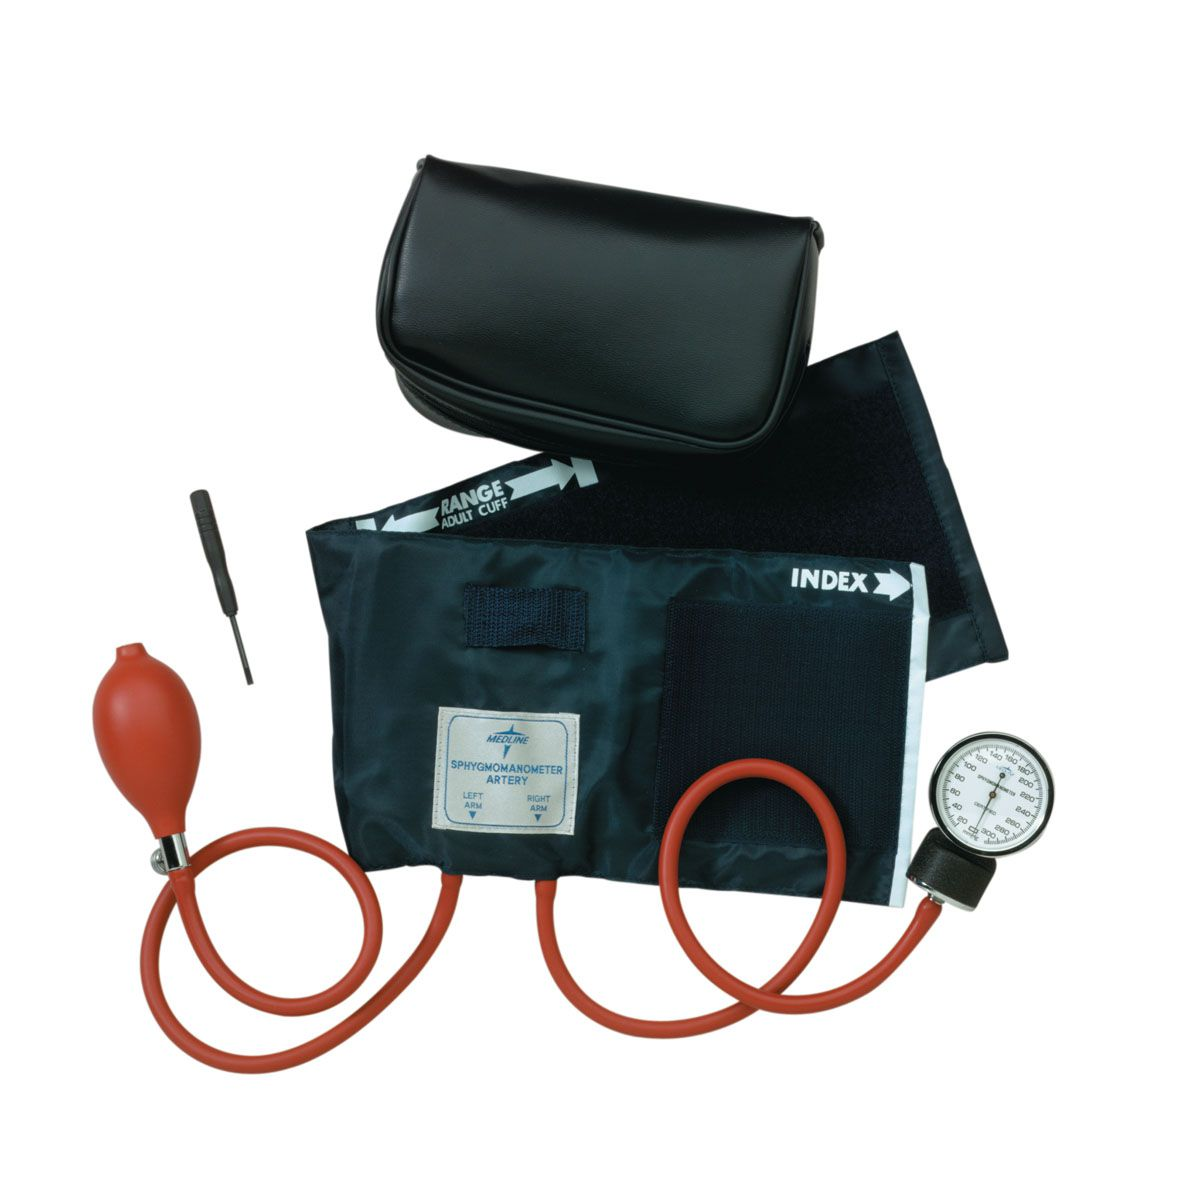 Medline Neoprene Handheld Aneroid Sphygmomanometer - Hand Held, Child, Each - Model MDS9387LF